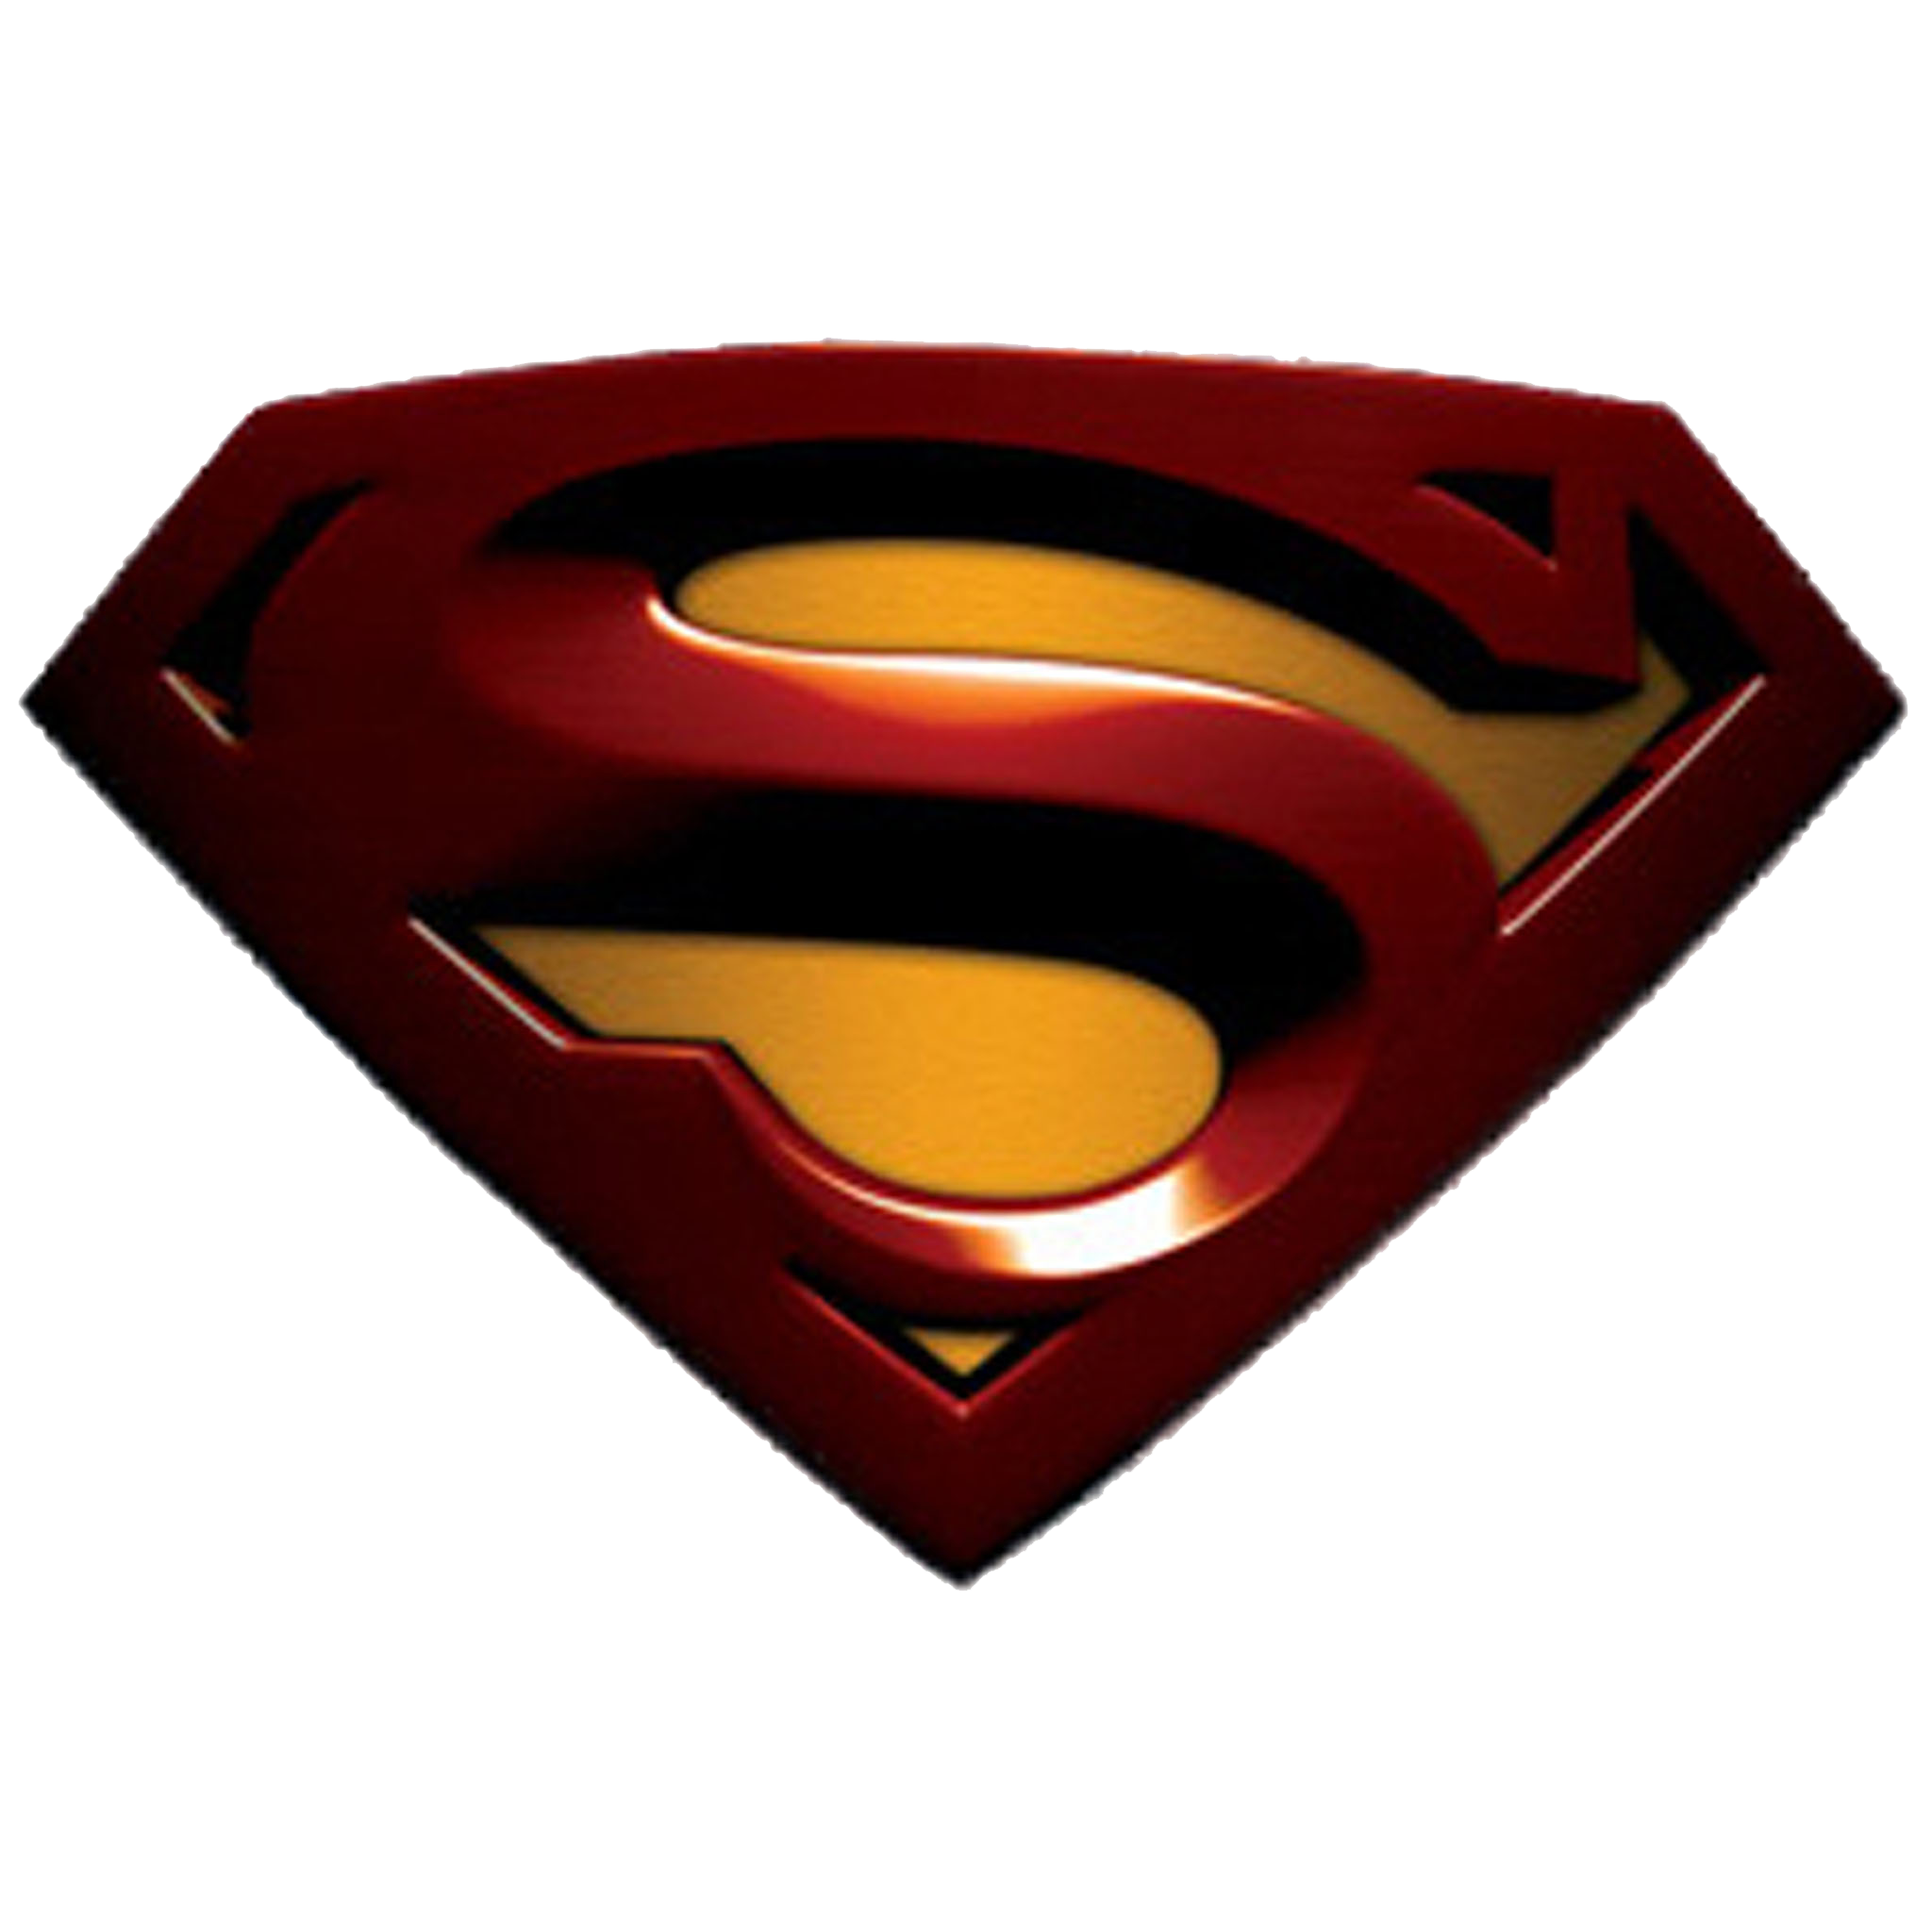 download superman logo free png photo images and clipart freepngimg rh freepngimg com batman vs superman logo png batman vs superman logo png